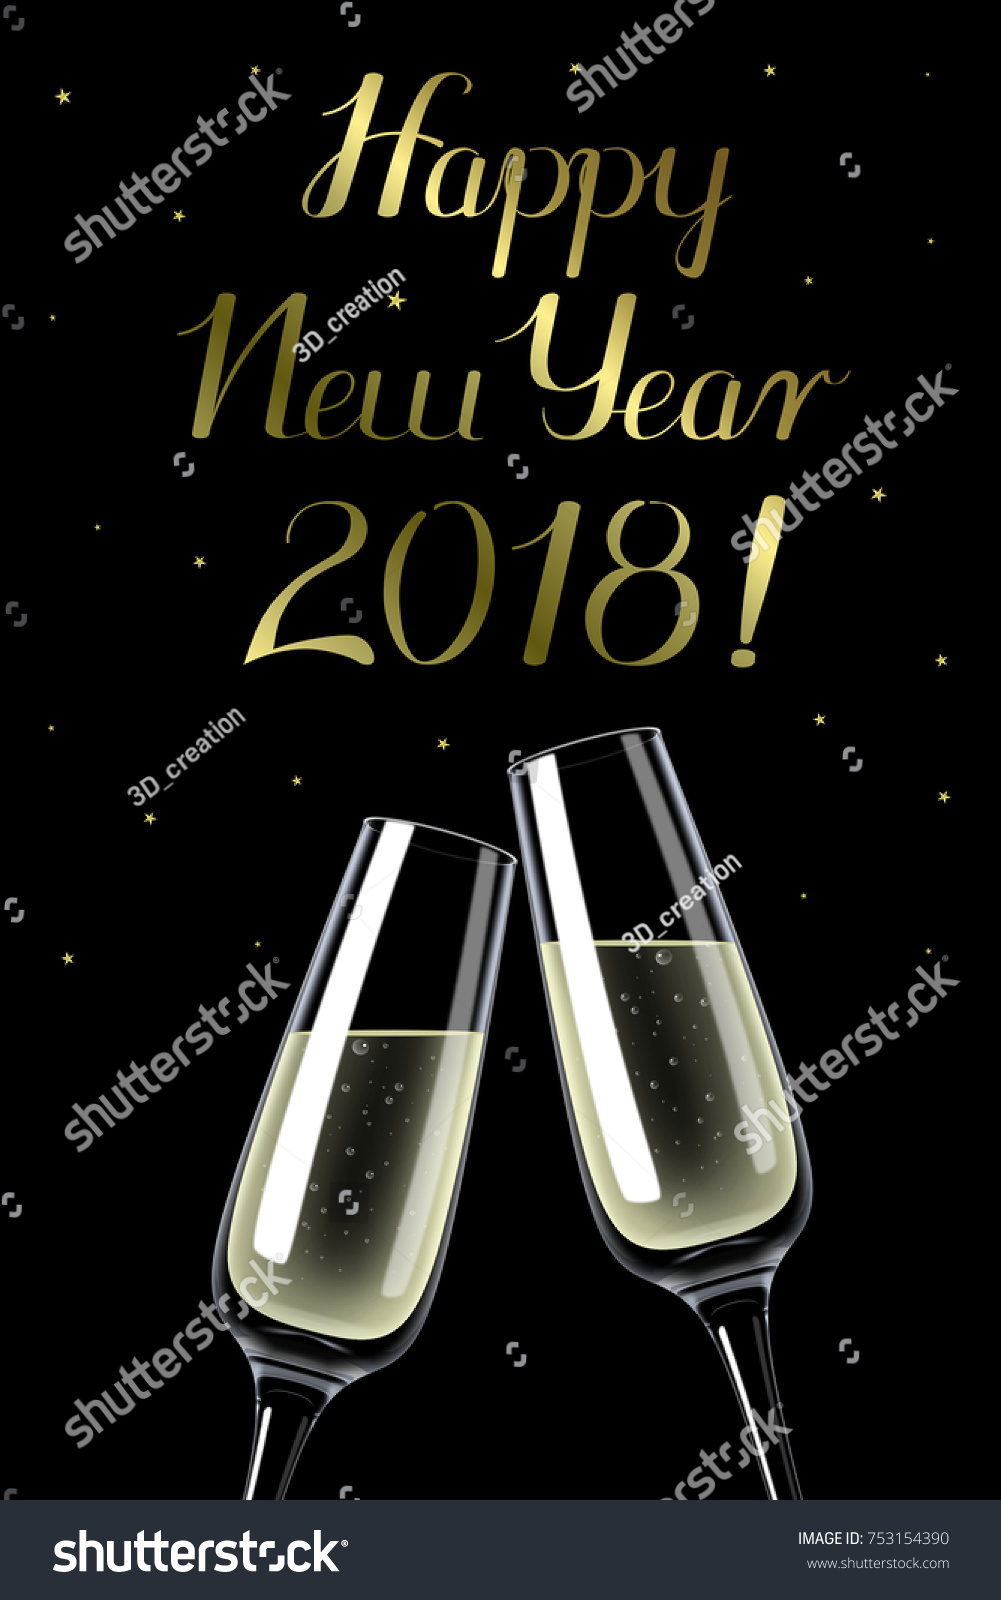 3d illustration 3d rendering happy new year 2018 illustration